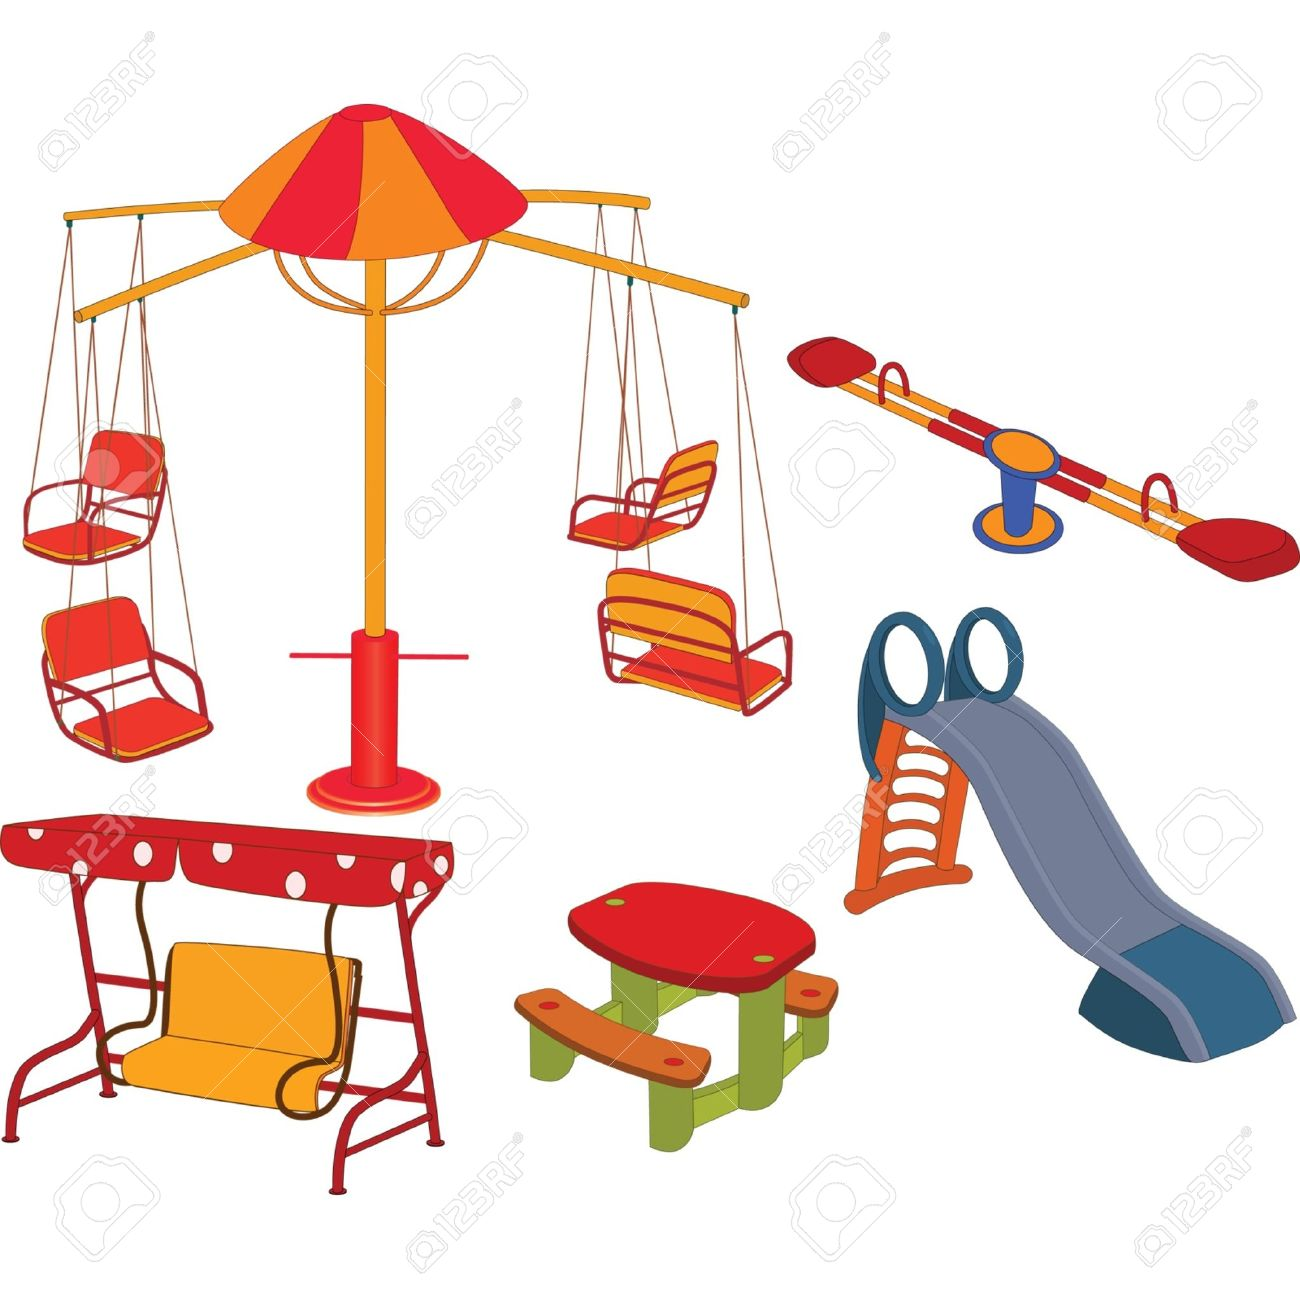 Cartoon clipart playground Free Carousel carousel%20clipart Clipart Clipart